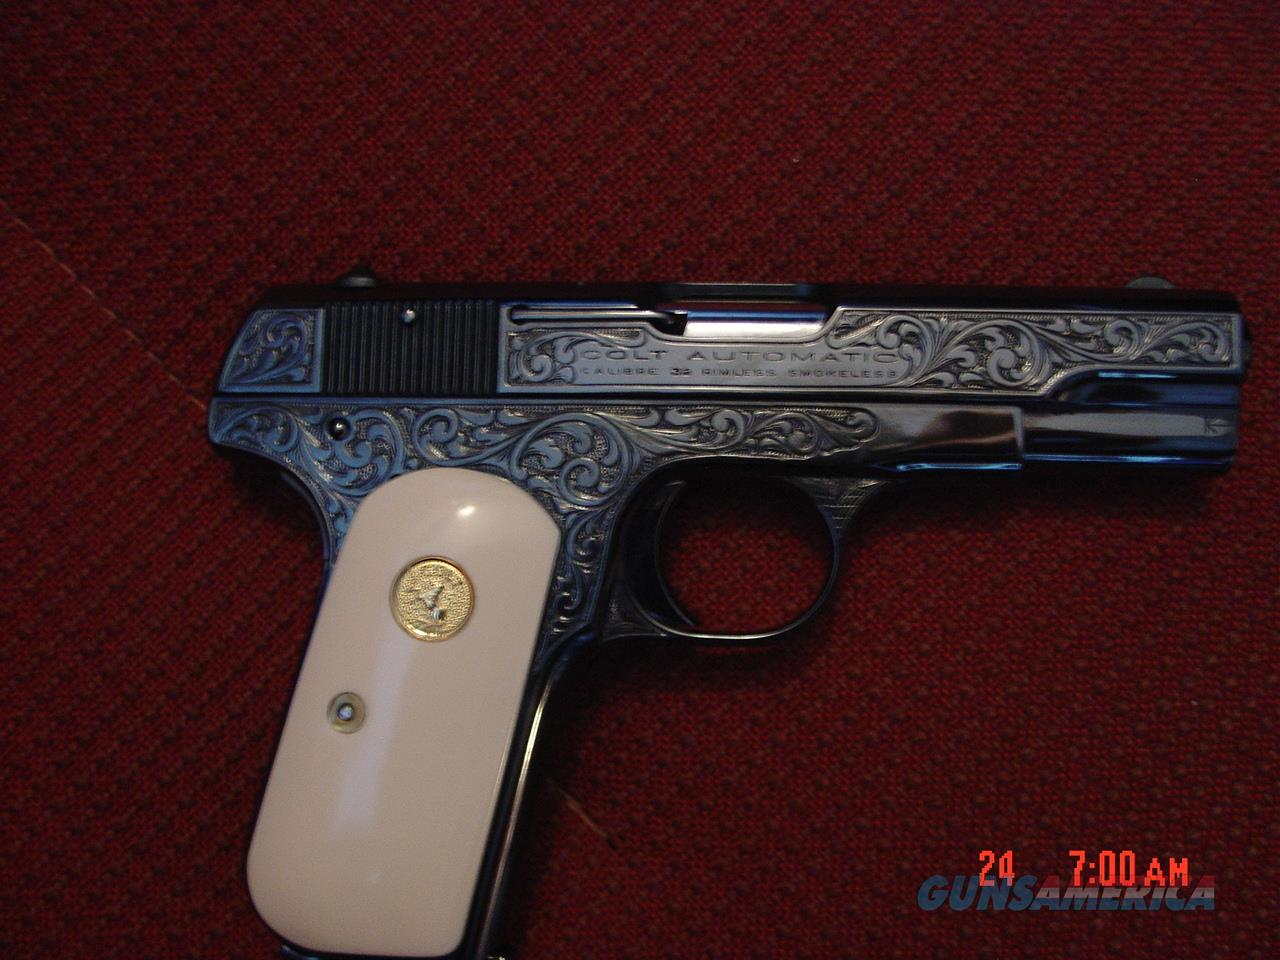 Colt 1903 hammerless, 32ACP, circa 1921,fully refinished in high gloss blue,& master engraved by S.Leis,with certificate,bonded ivory grips,1 of a kind work of art-nicer in person  Guns > Pistols > Colt Automatic Pistols (.25, .32, & .380 cal)